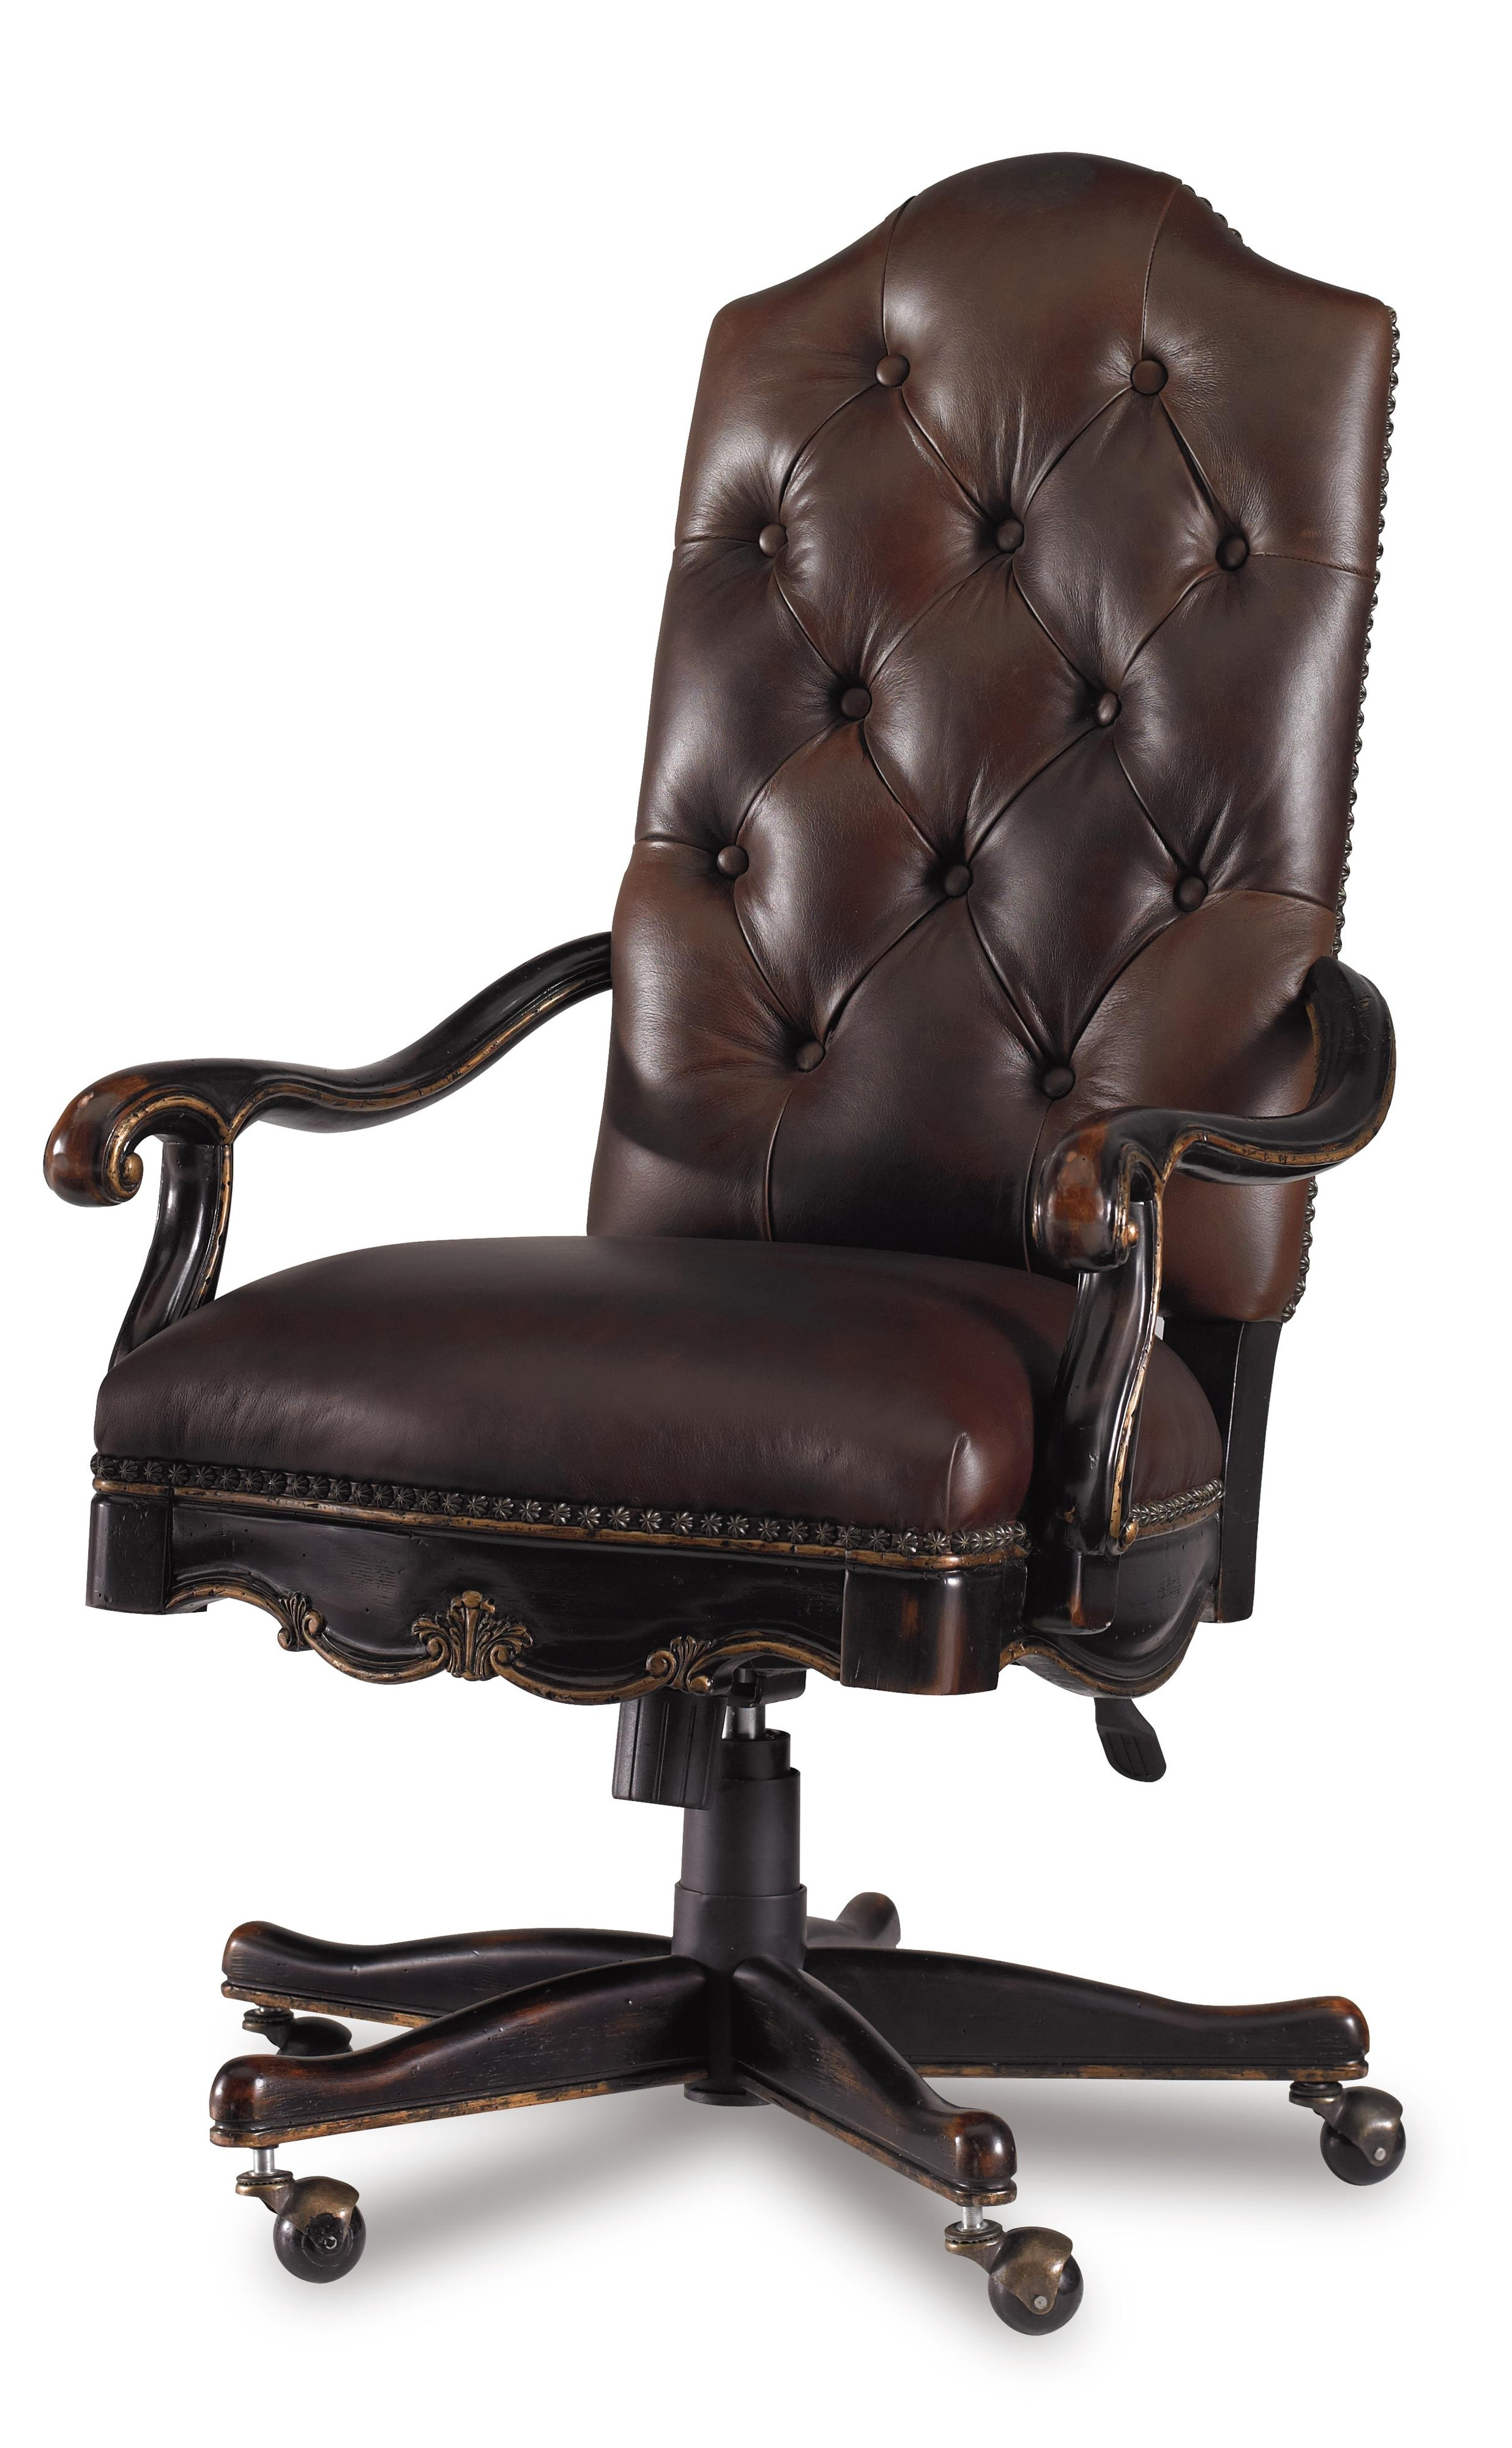 Chair : Martinez Executive Tilt Leather Office Chair Big And Tall Intended For Most Recent Green Executive Office Chairs (View 16 of 20)